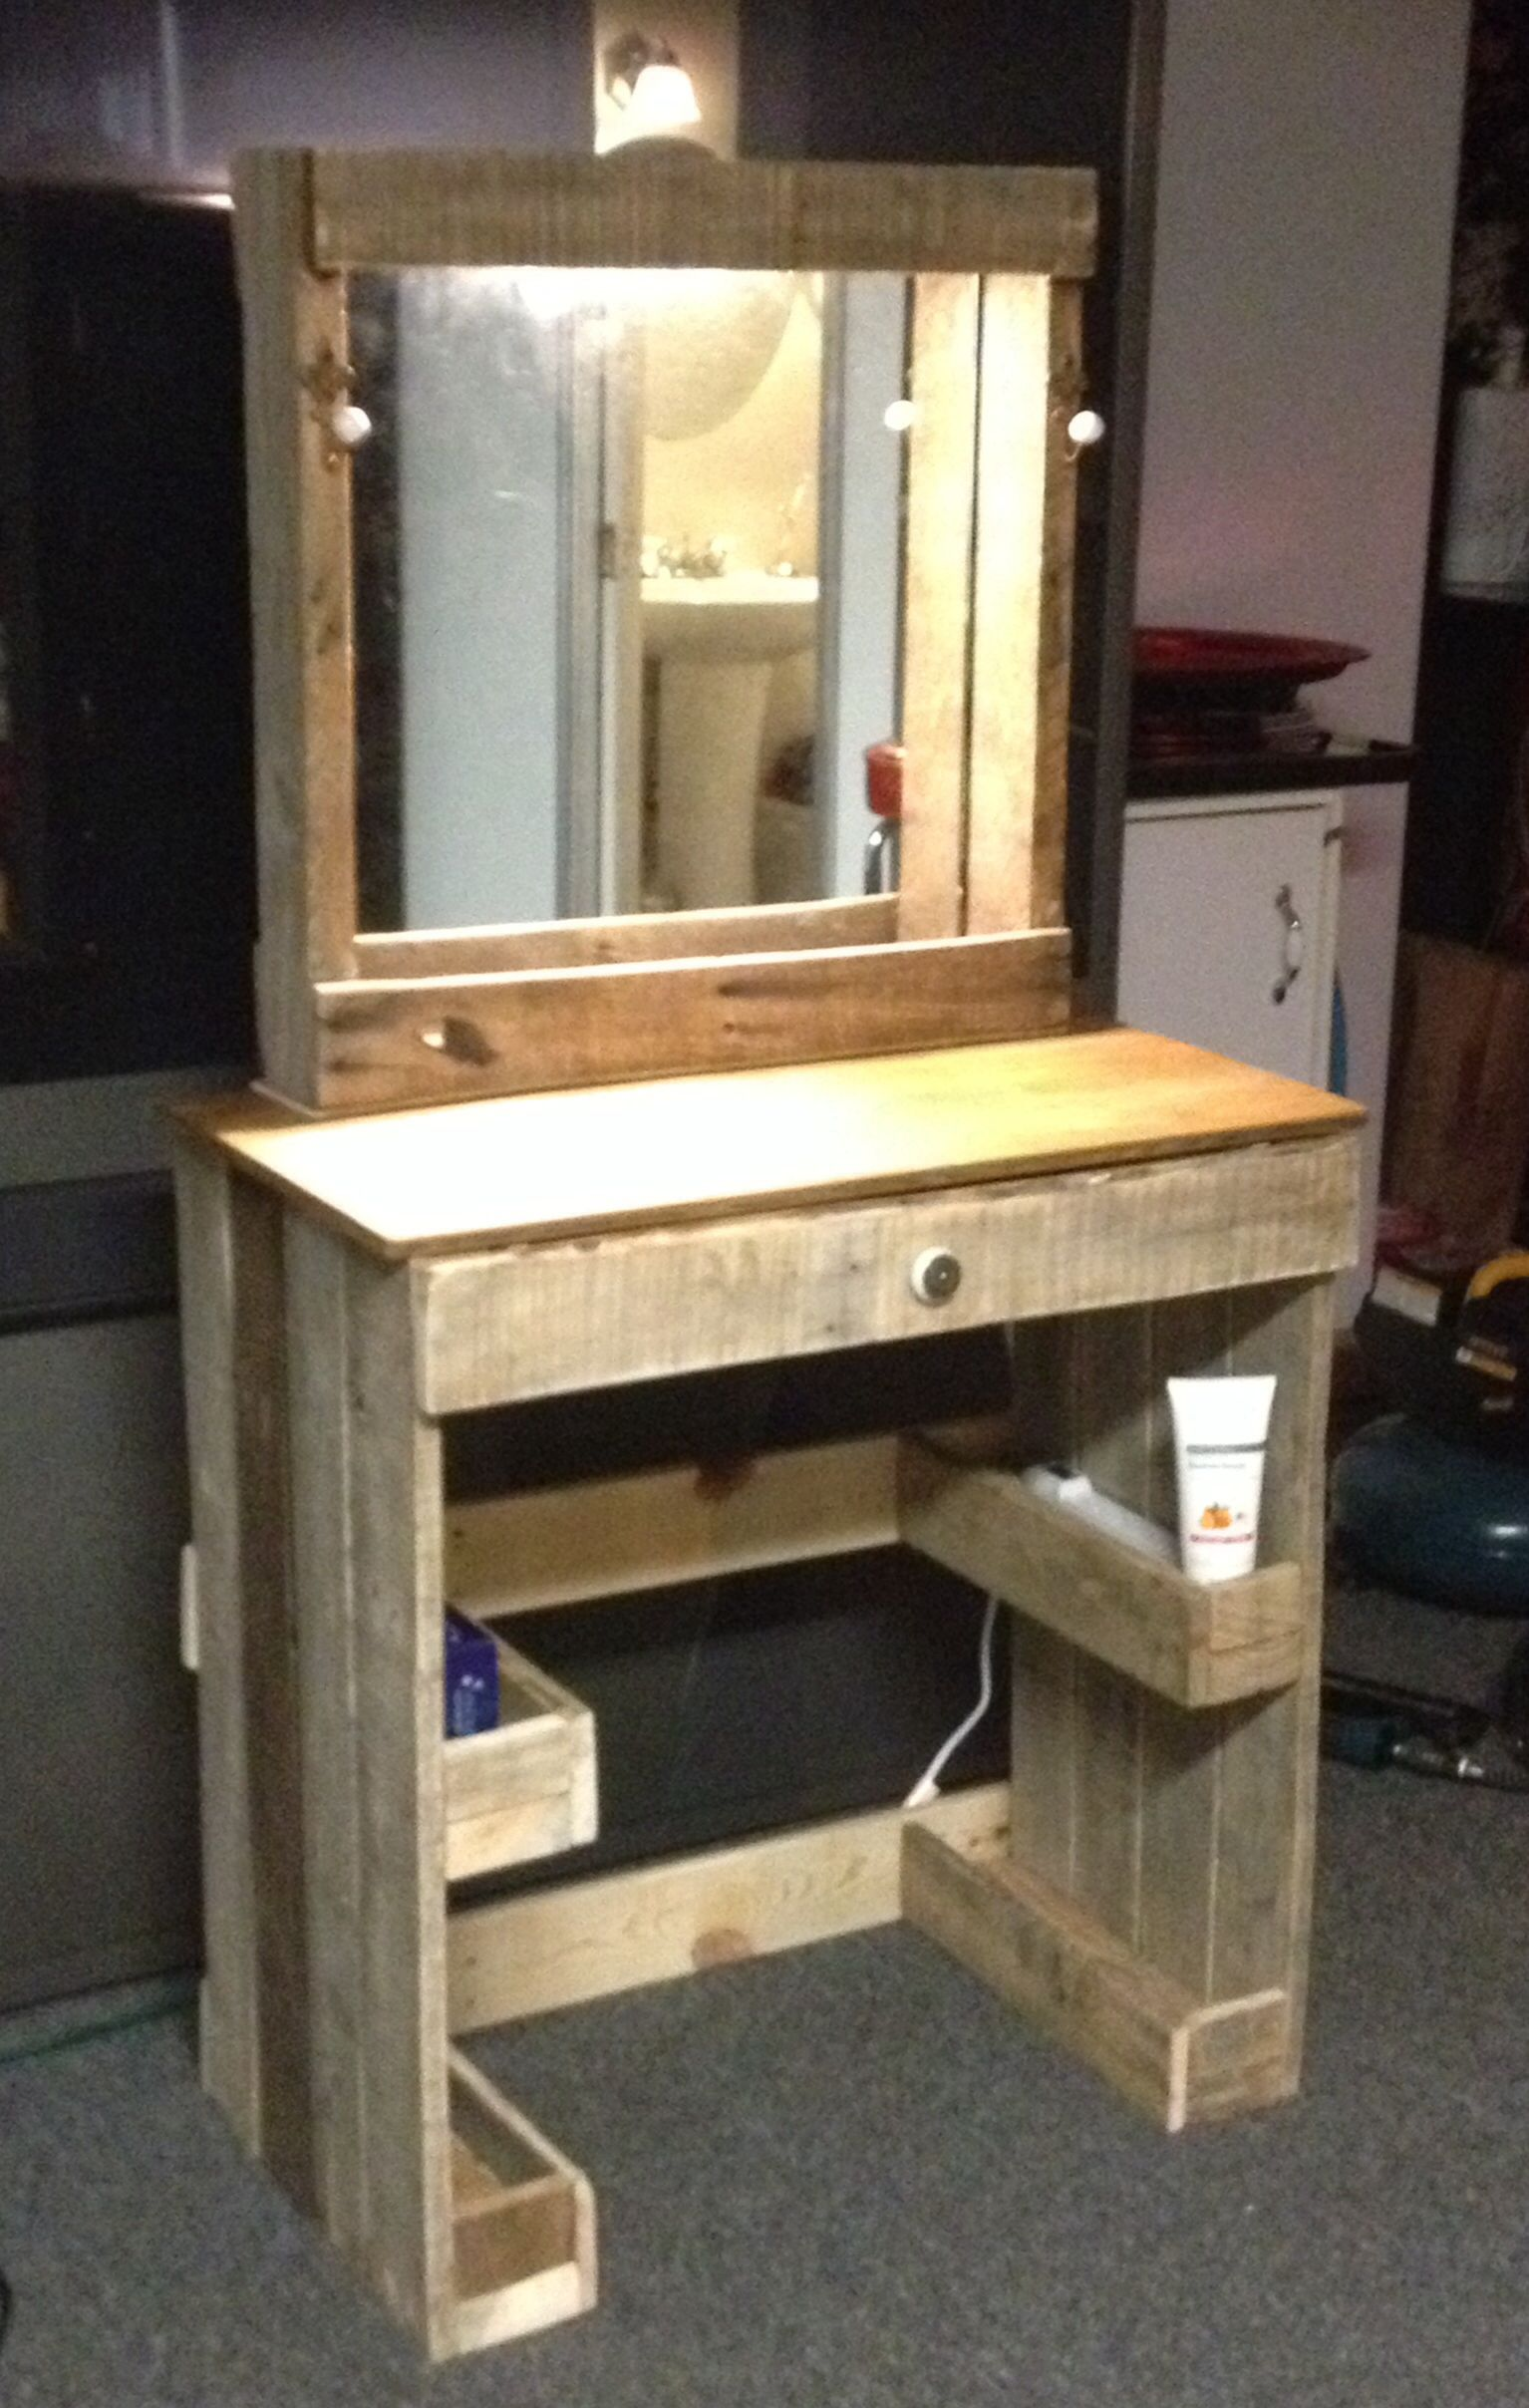 Nice Makeup Vanity Plans #5: Vanity With Lighted Make-up Mirror Made From Reclaimed Wood! Fun Project!